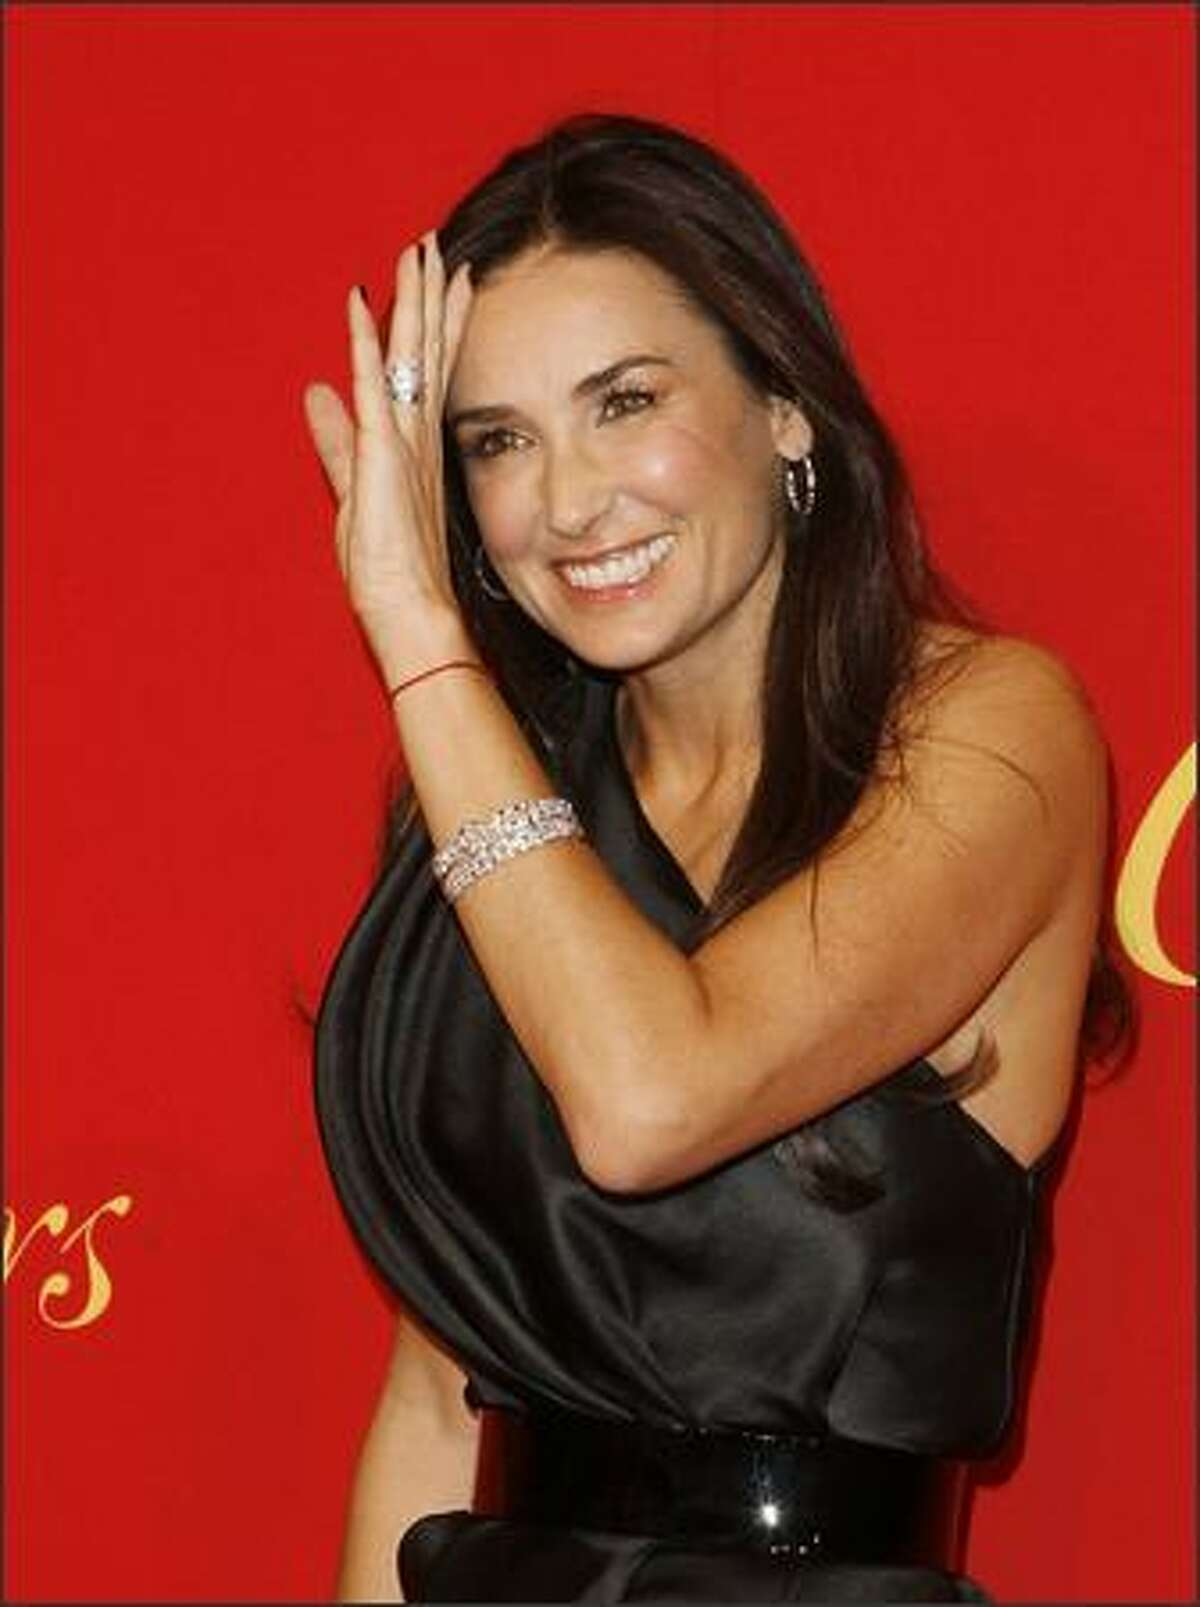 Actress Demi Moore arrives for the Cartier 100th Anniversary in America Celebration event in New York.